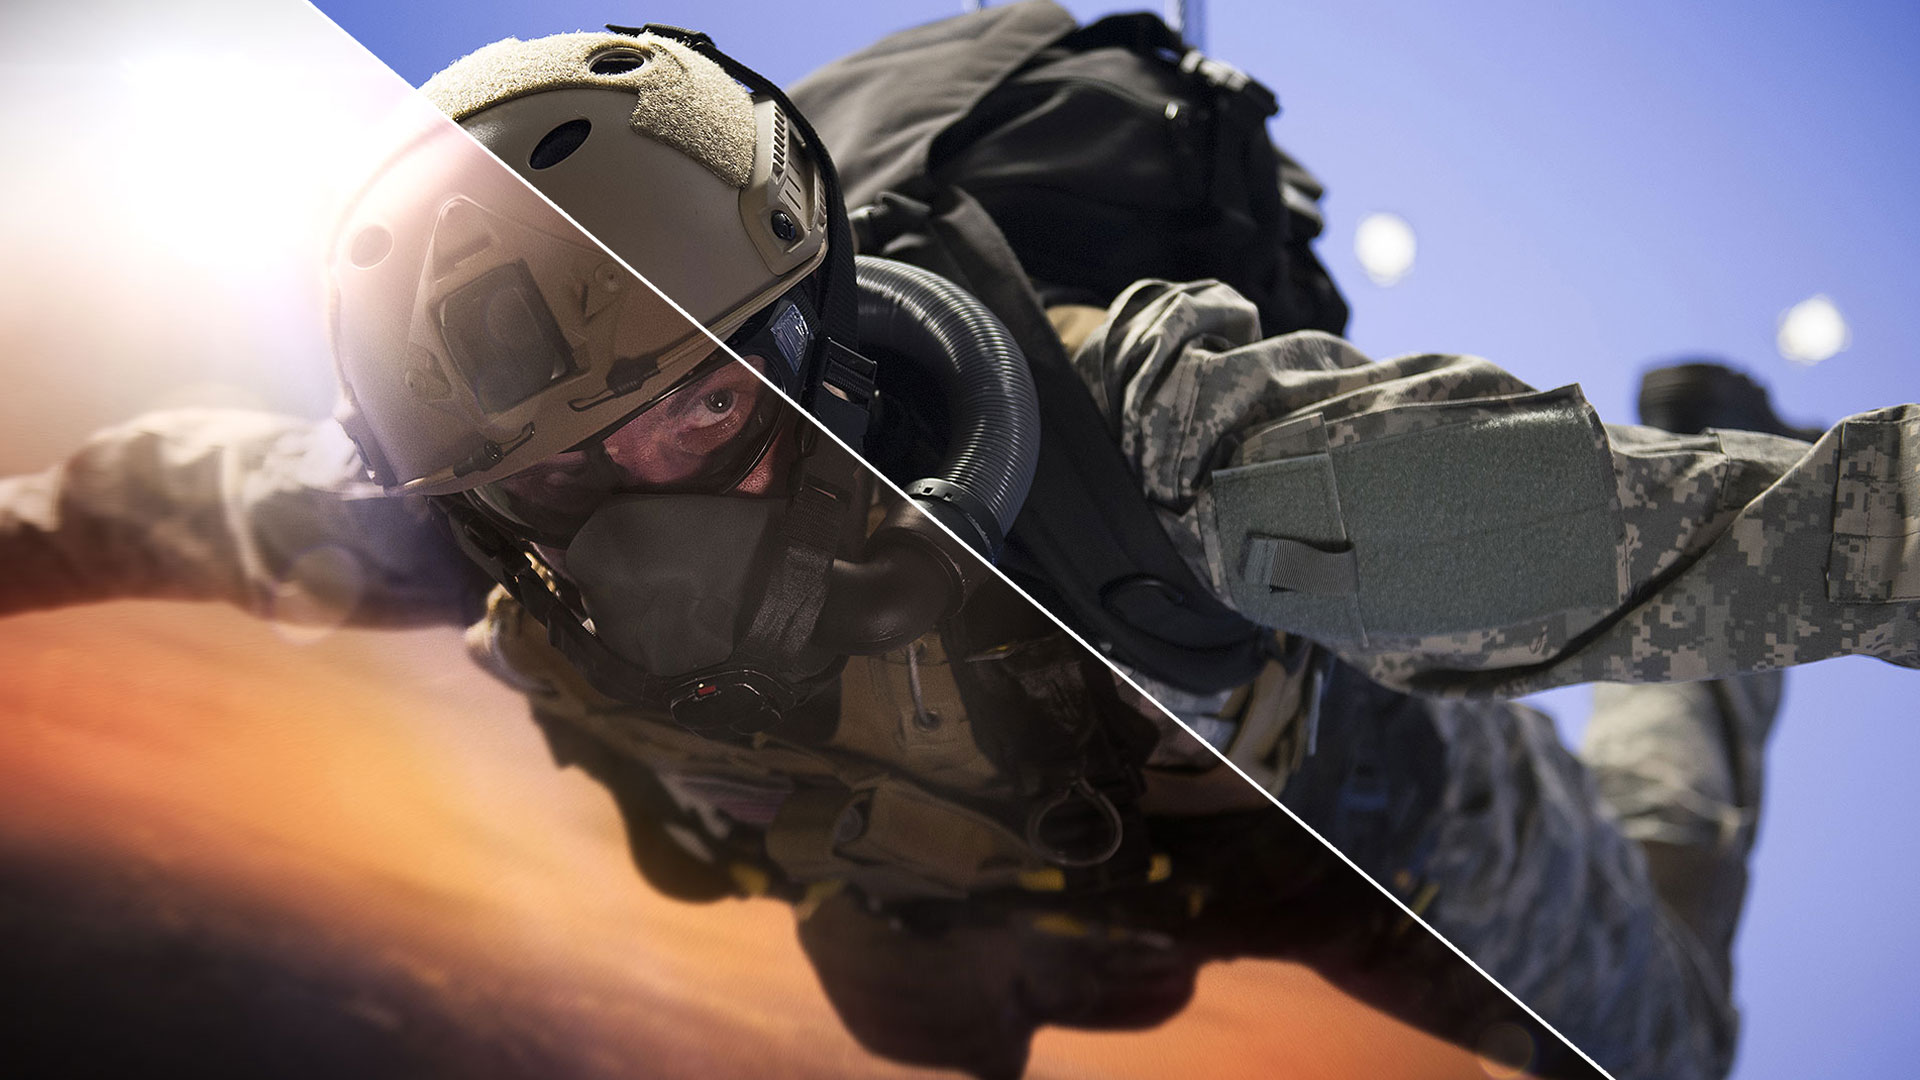 Blue screen chroma keying soldier sky dive Halo Jump VFX compositing masterclass